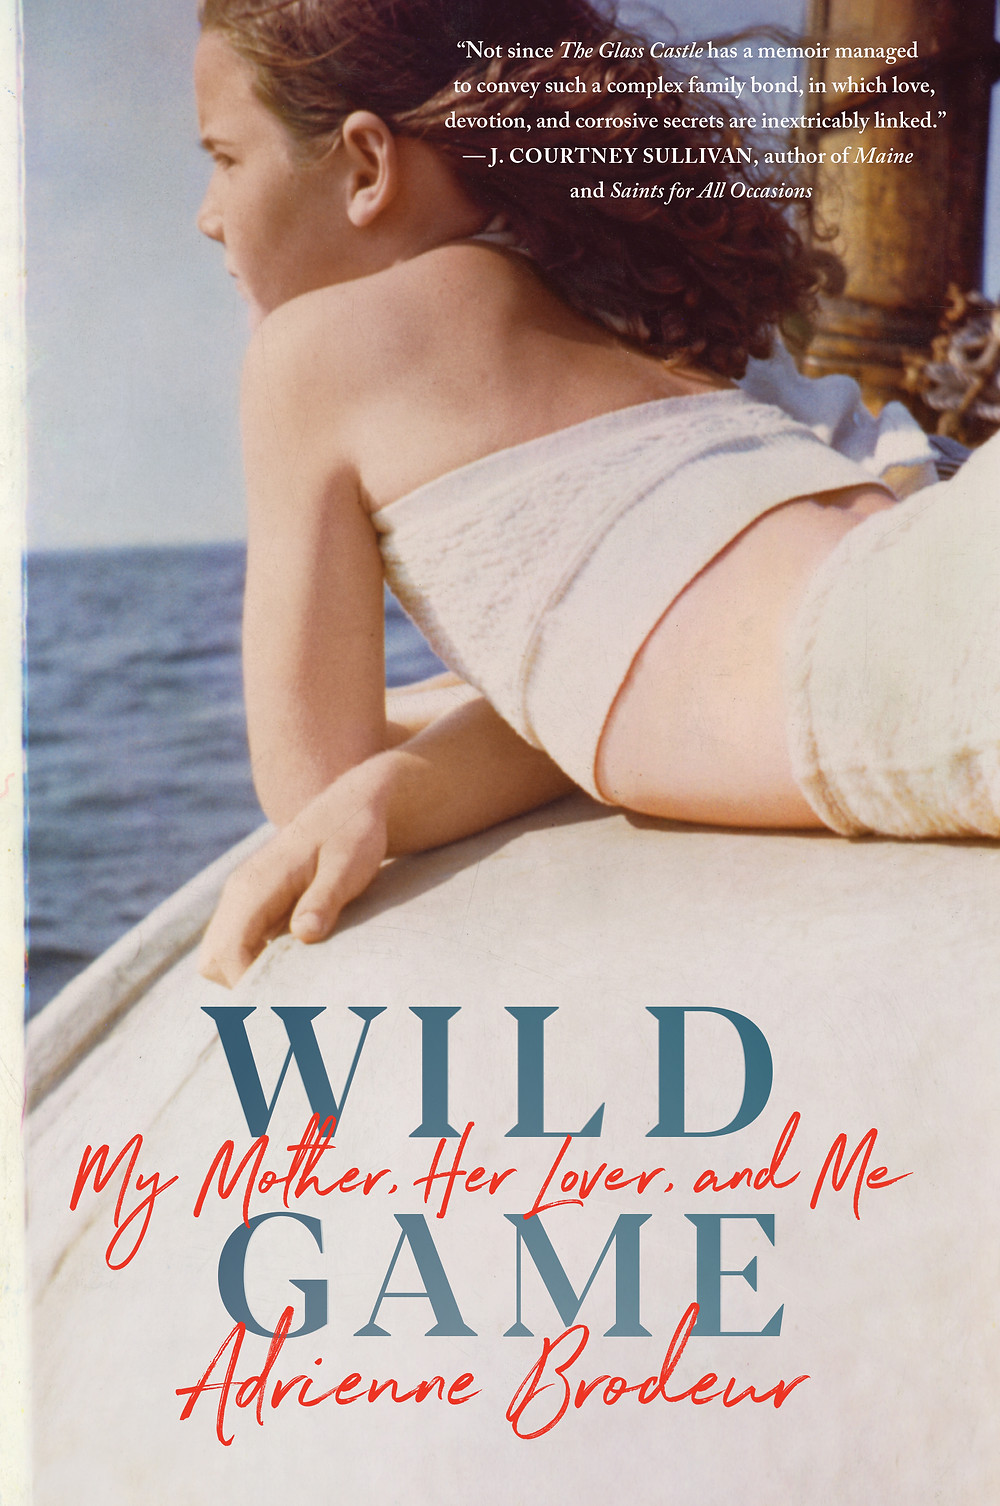 book cover of Adrienne Brodeur's Wild Game